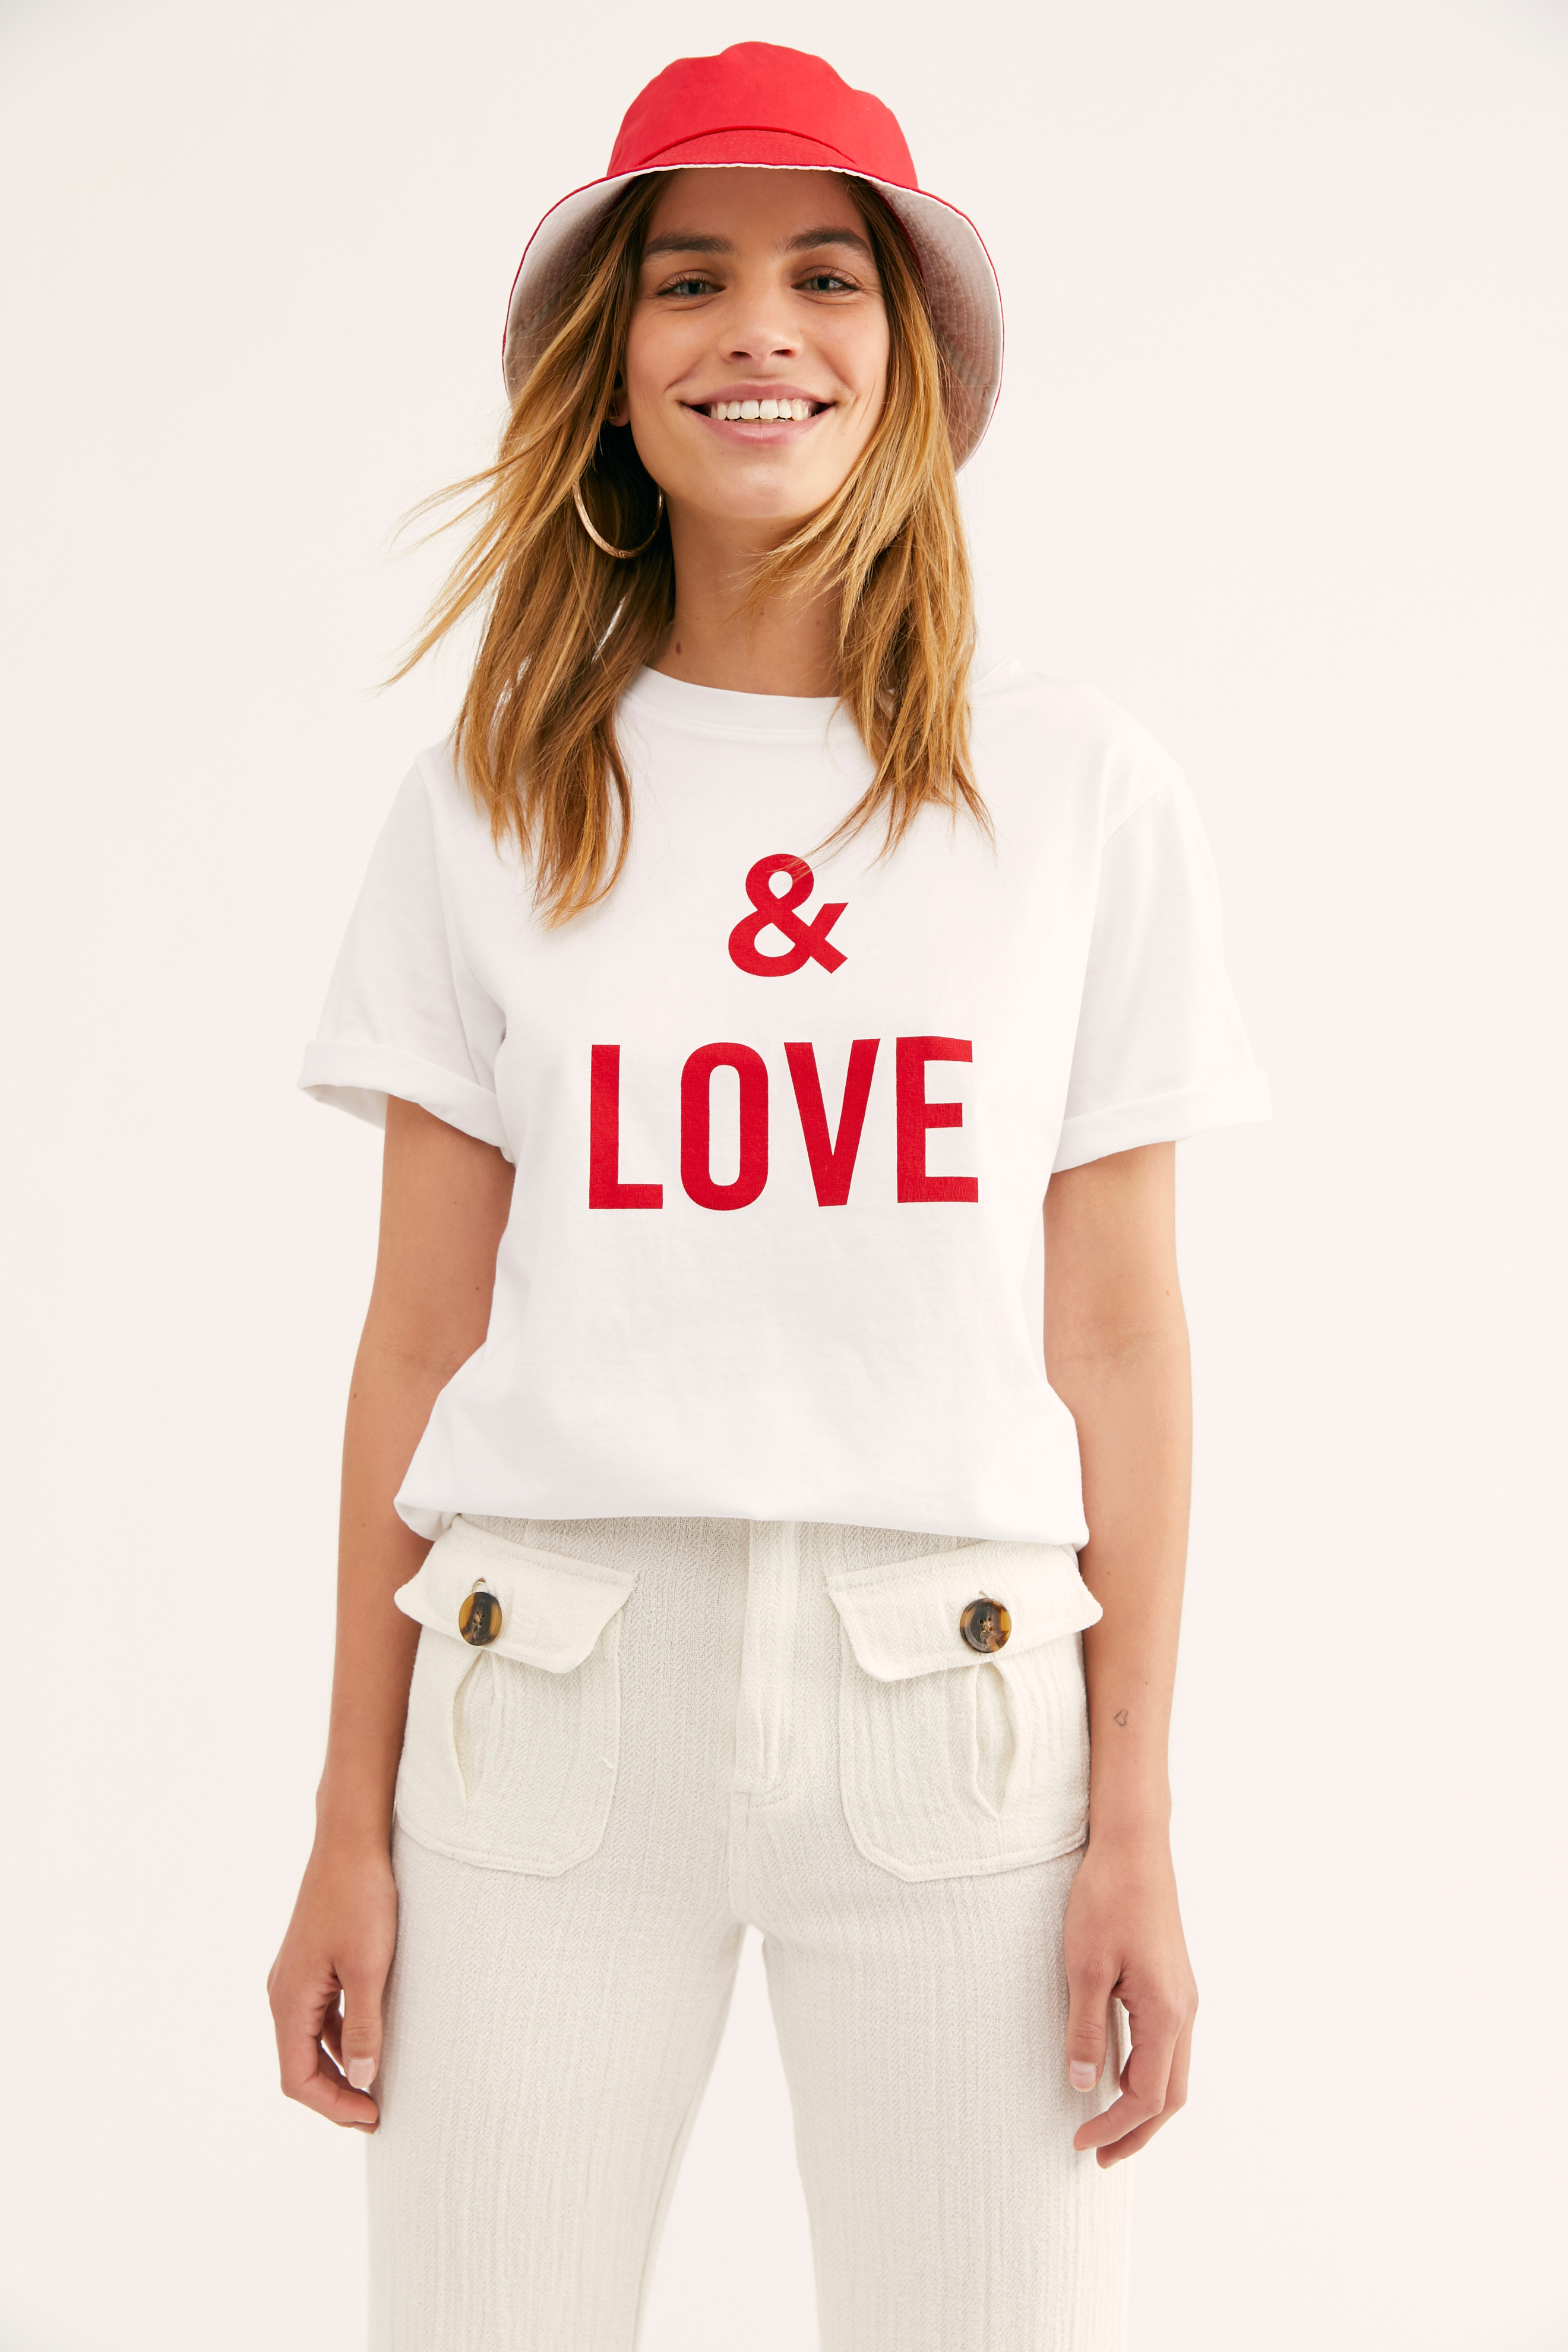 https   www.freepeople.com shop -love-tee  2019-03-13 https   images ... f88e92b8d